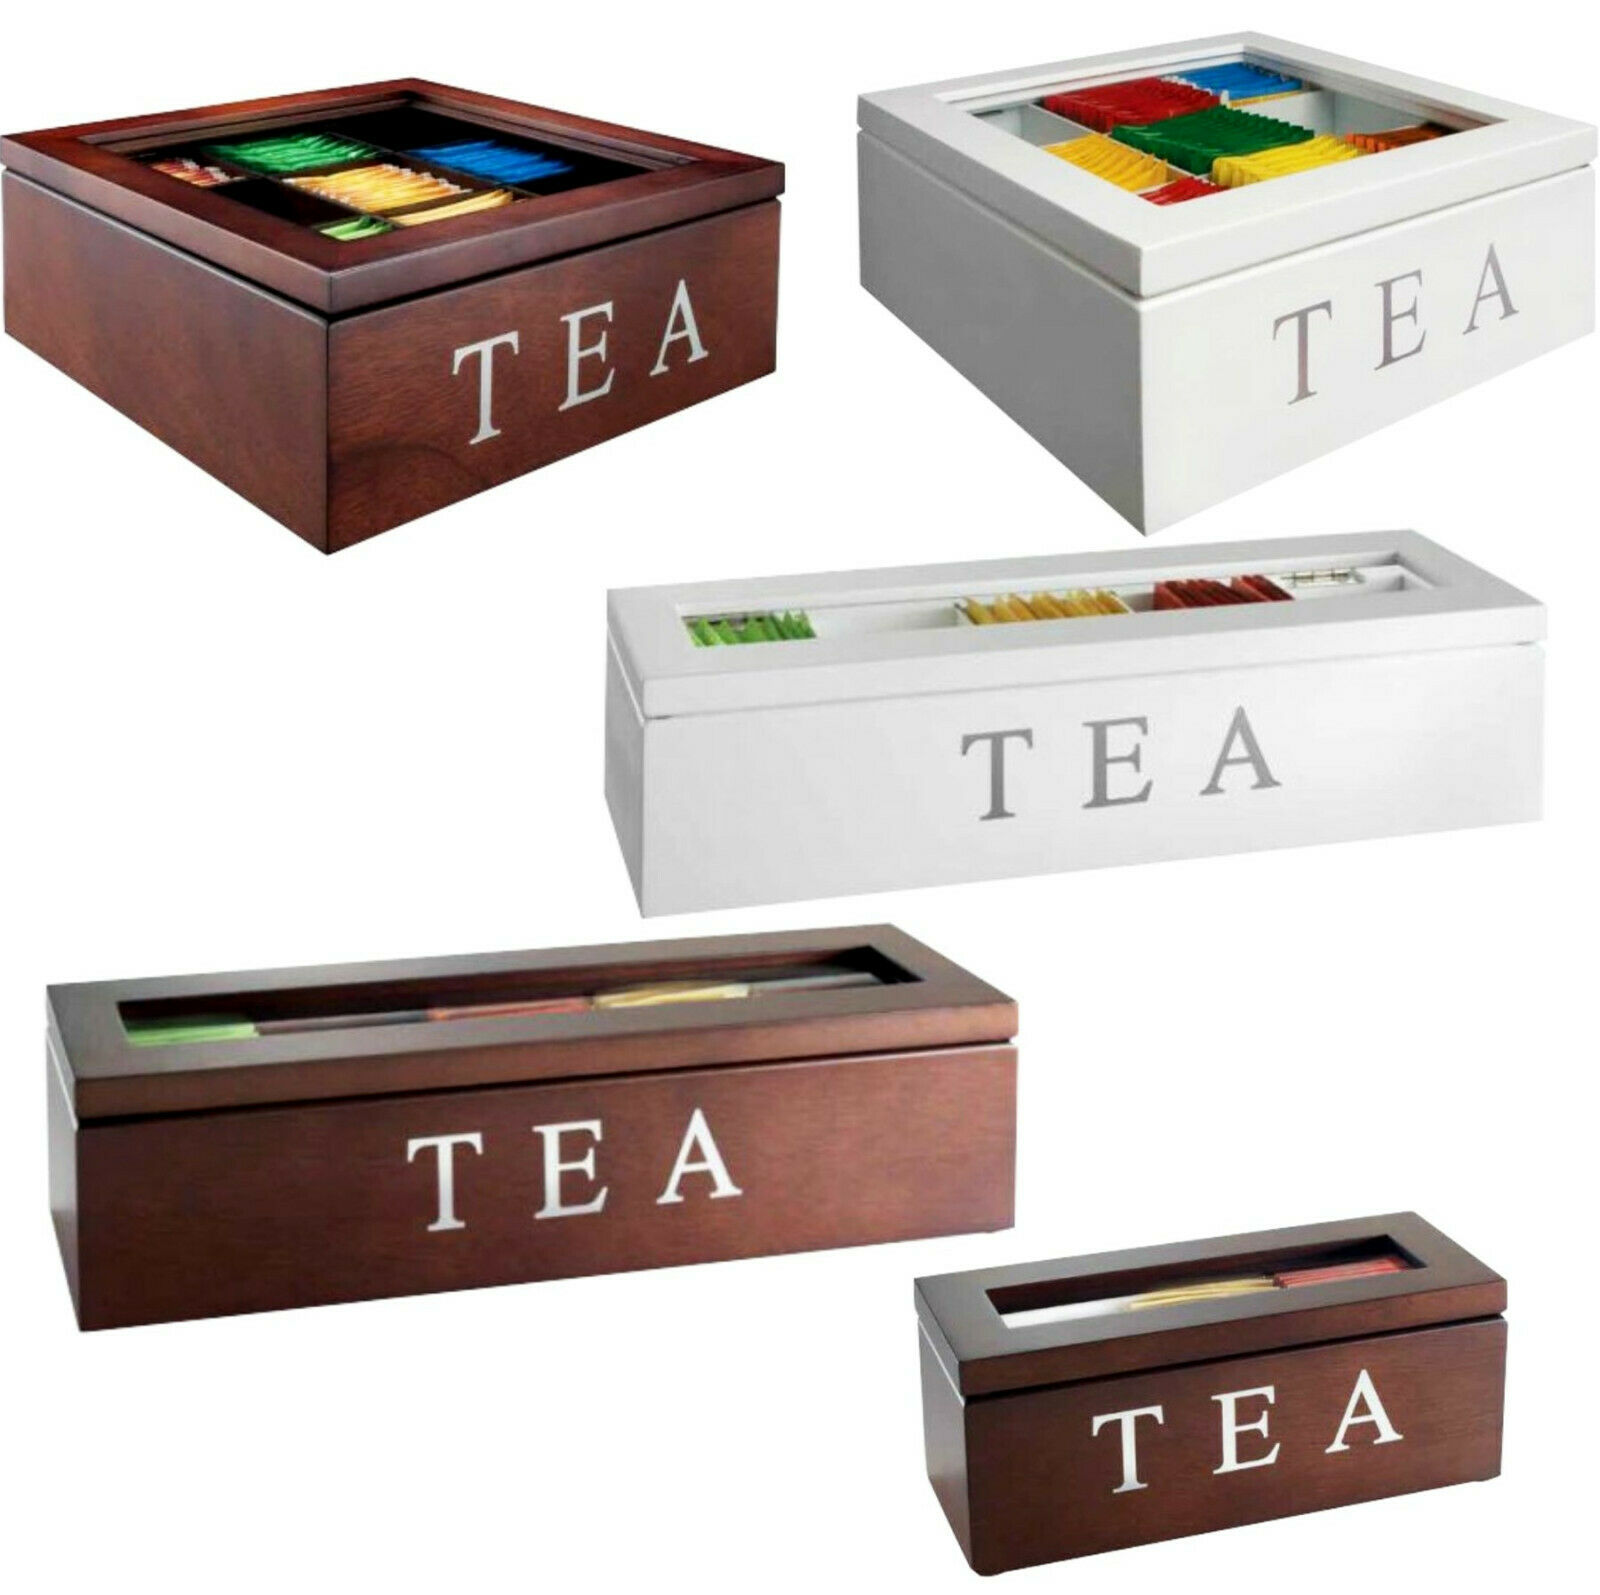 WHITE WOODEN MODERN TEA BOX CONTAINER GLASS LID 9 DIVISIONS HOLDS 90 BAGS HW201A